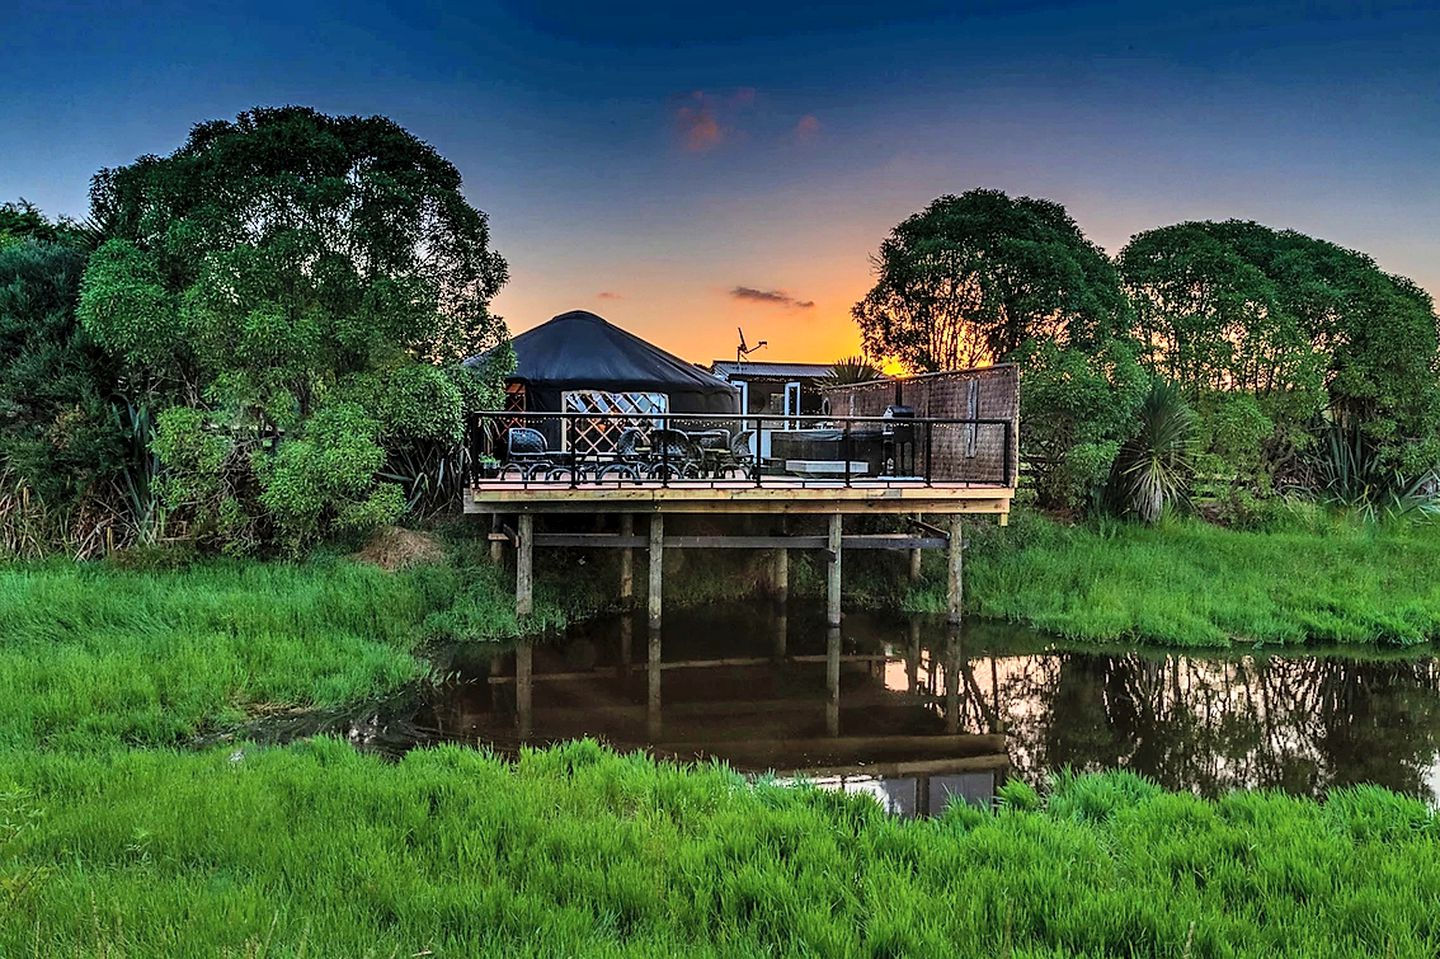 This Bay of Plenty accommodation is ideal for glamping, North Island